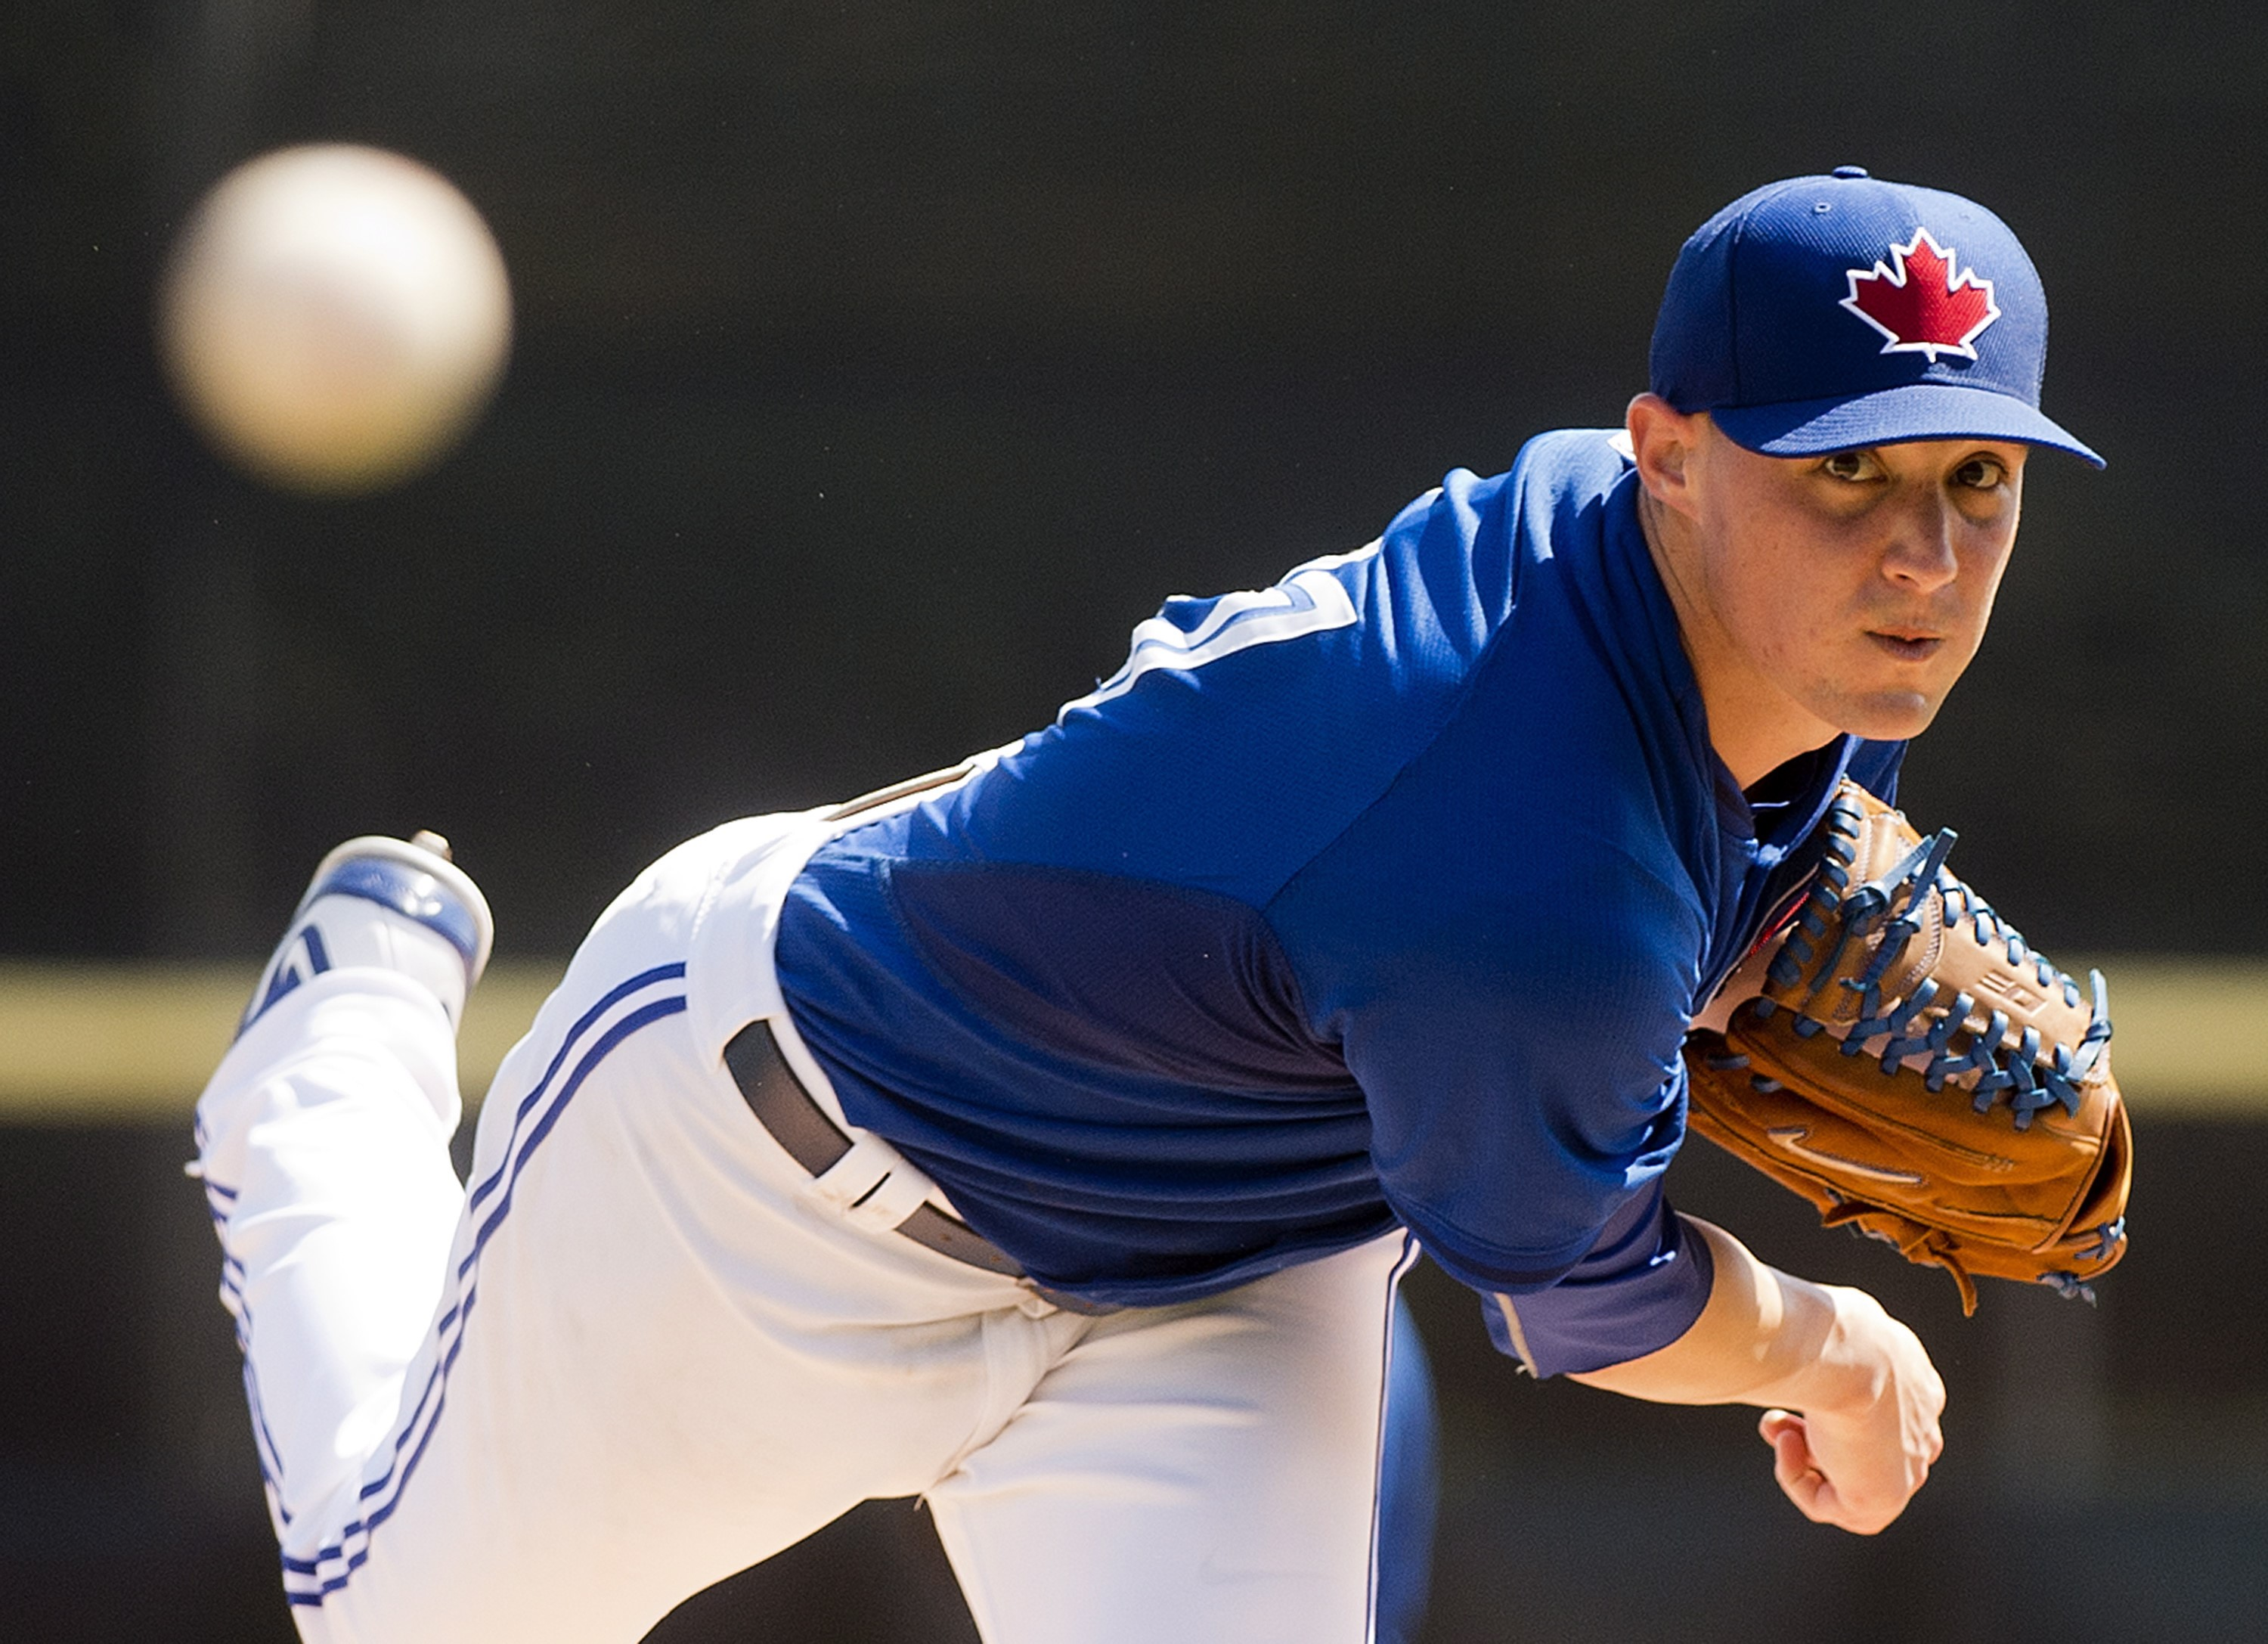 Toronto Blue Jays give Aaron Sanchez spot in starting rotation